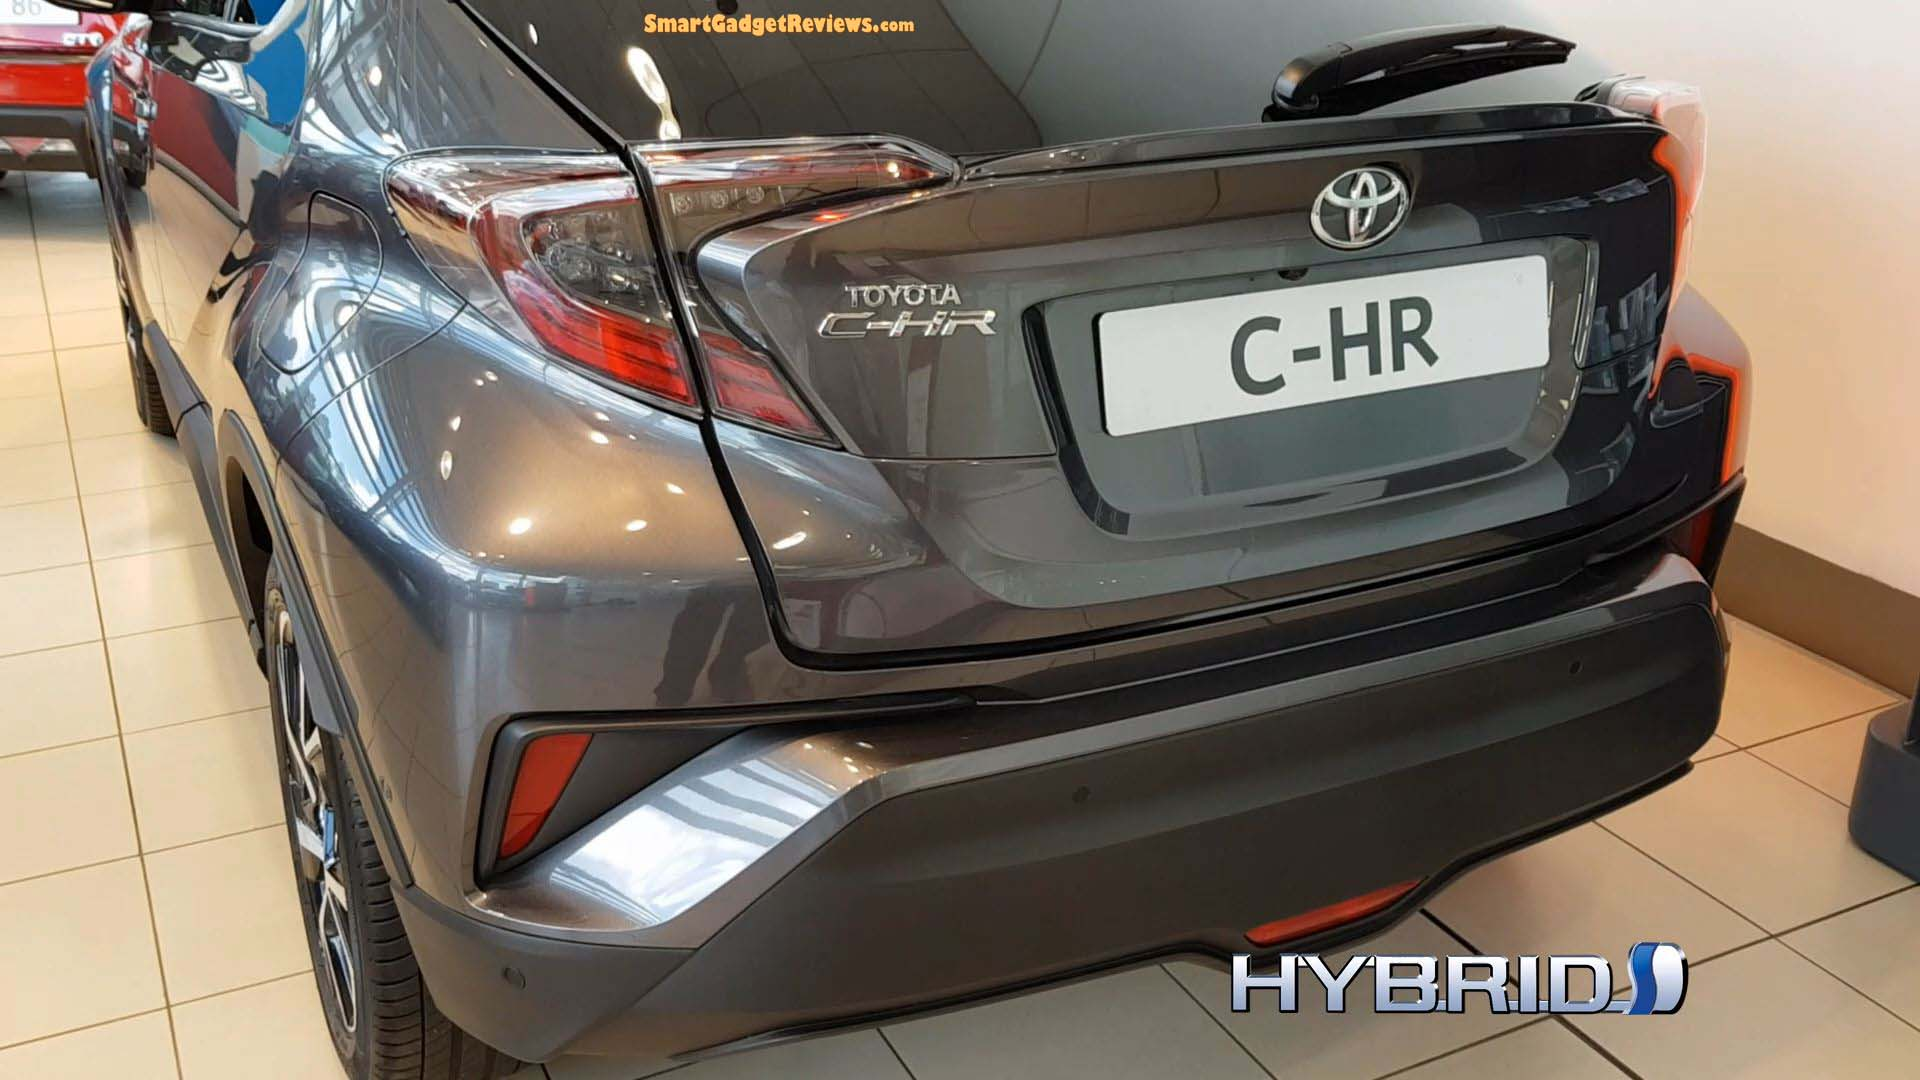 The All New 2018 Toyota C-HR Crossover SUV Car